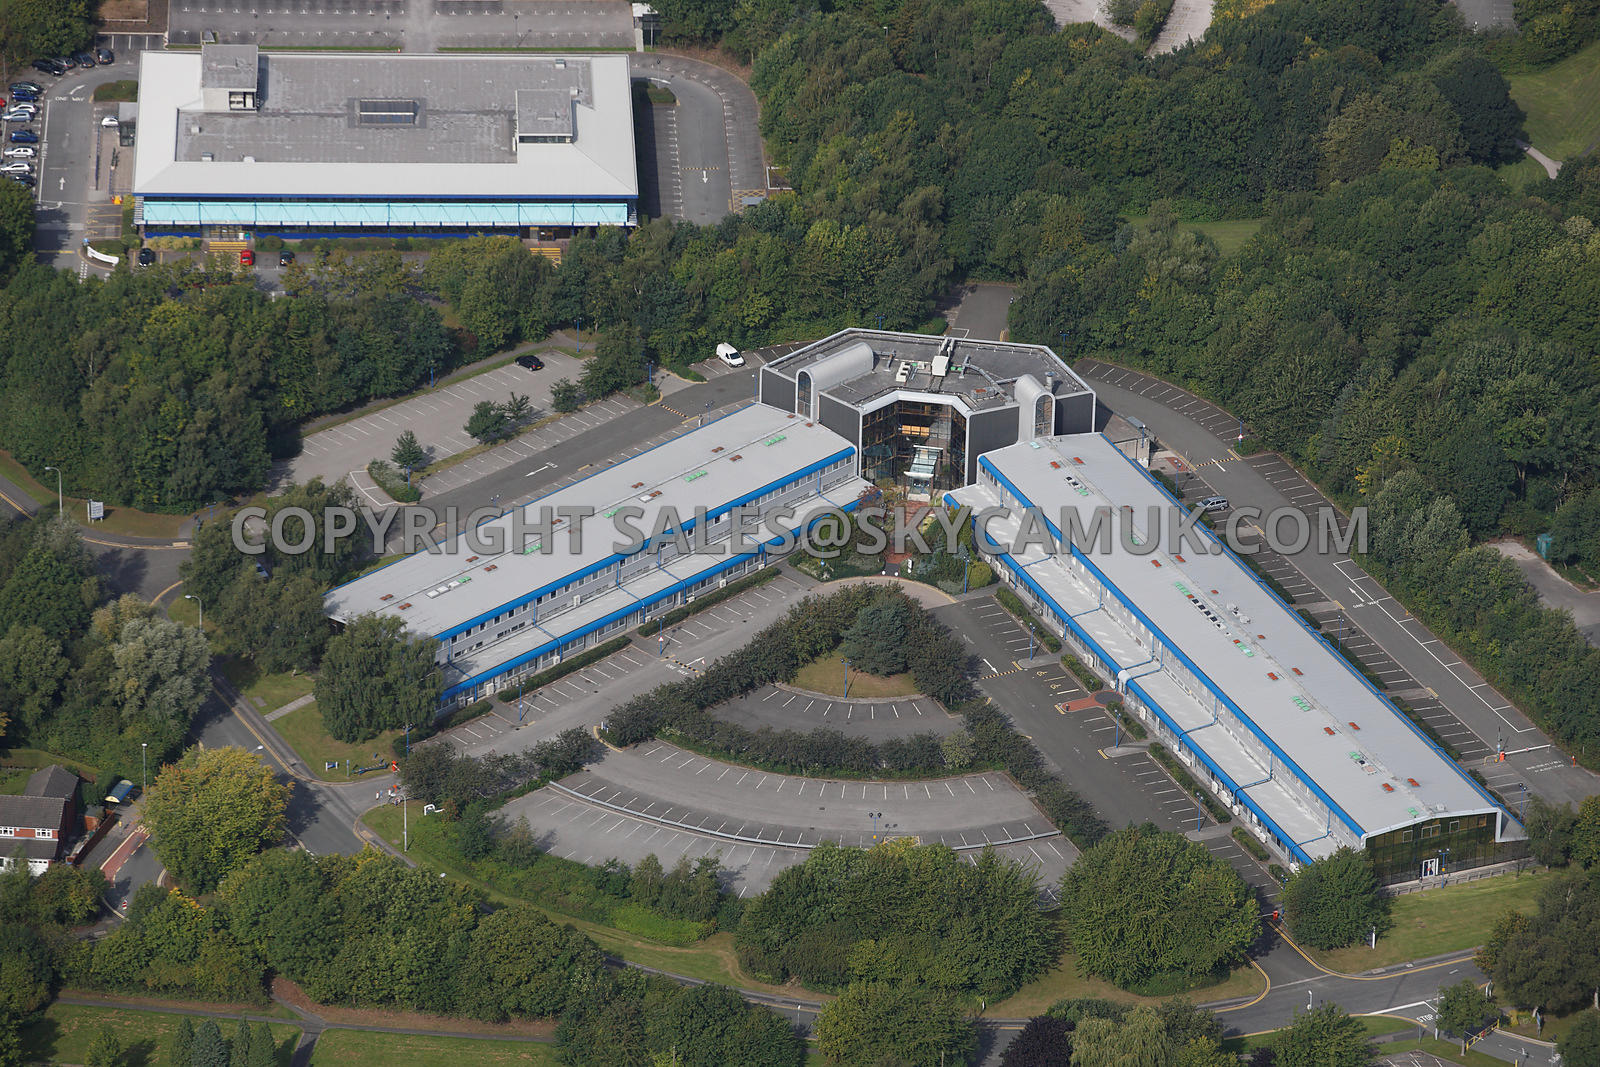 Aerial photography of warrington aerial photograph of L shaped building